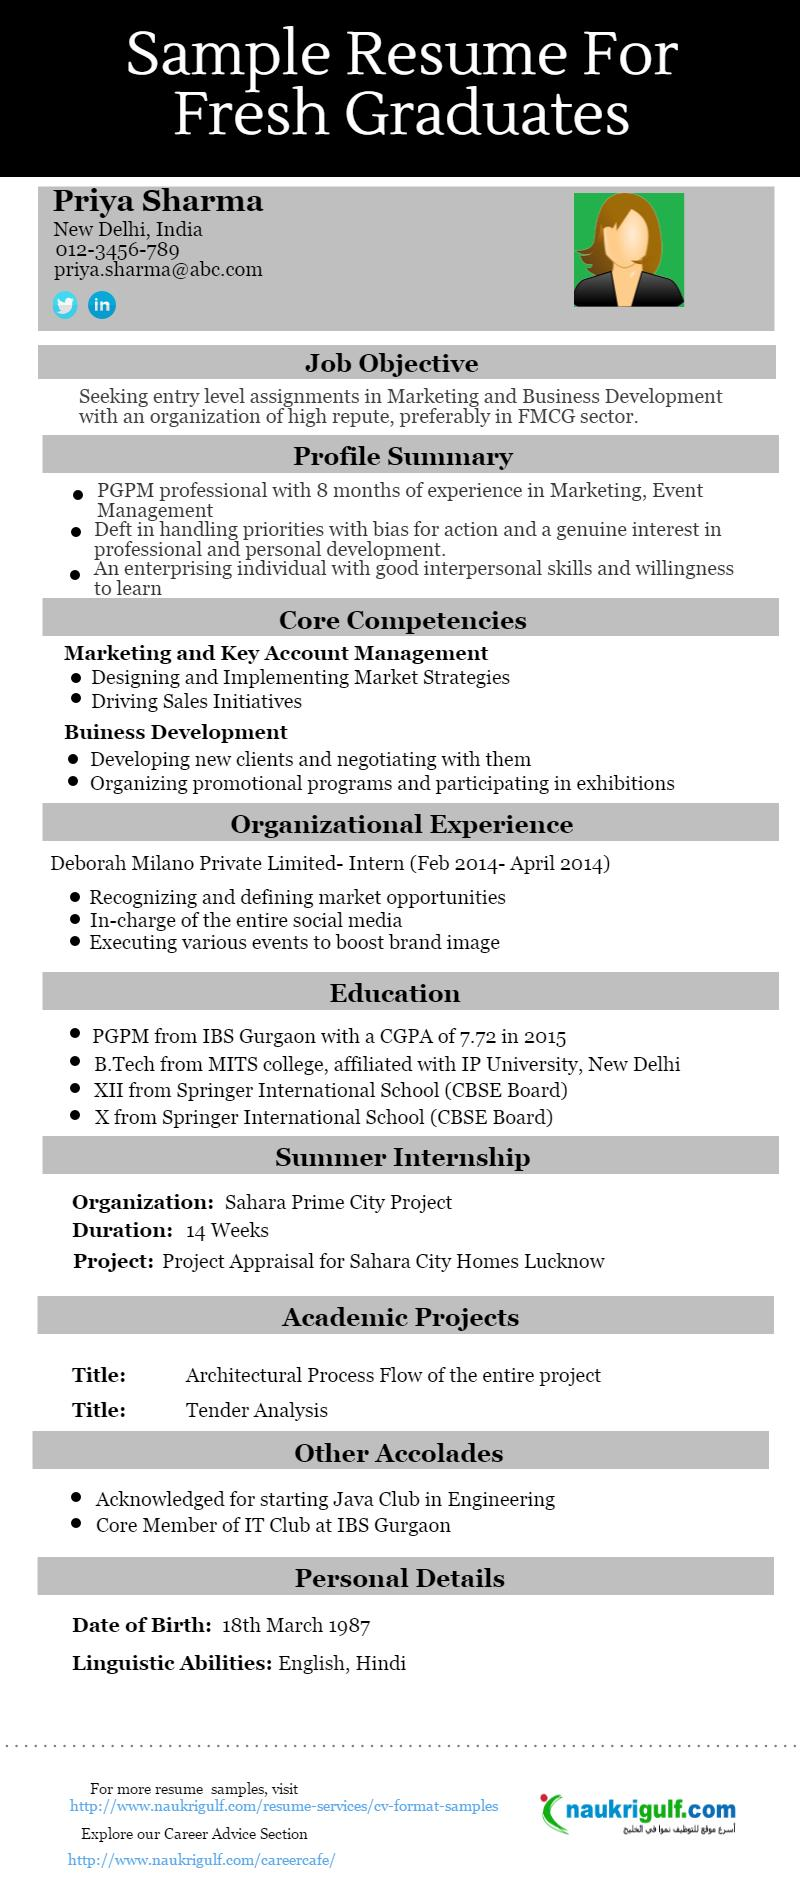 sample resume for banking and finance fresh graduate best graduates creating sites donde Resume Best Resume For Fresh Graduate